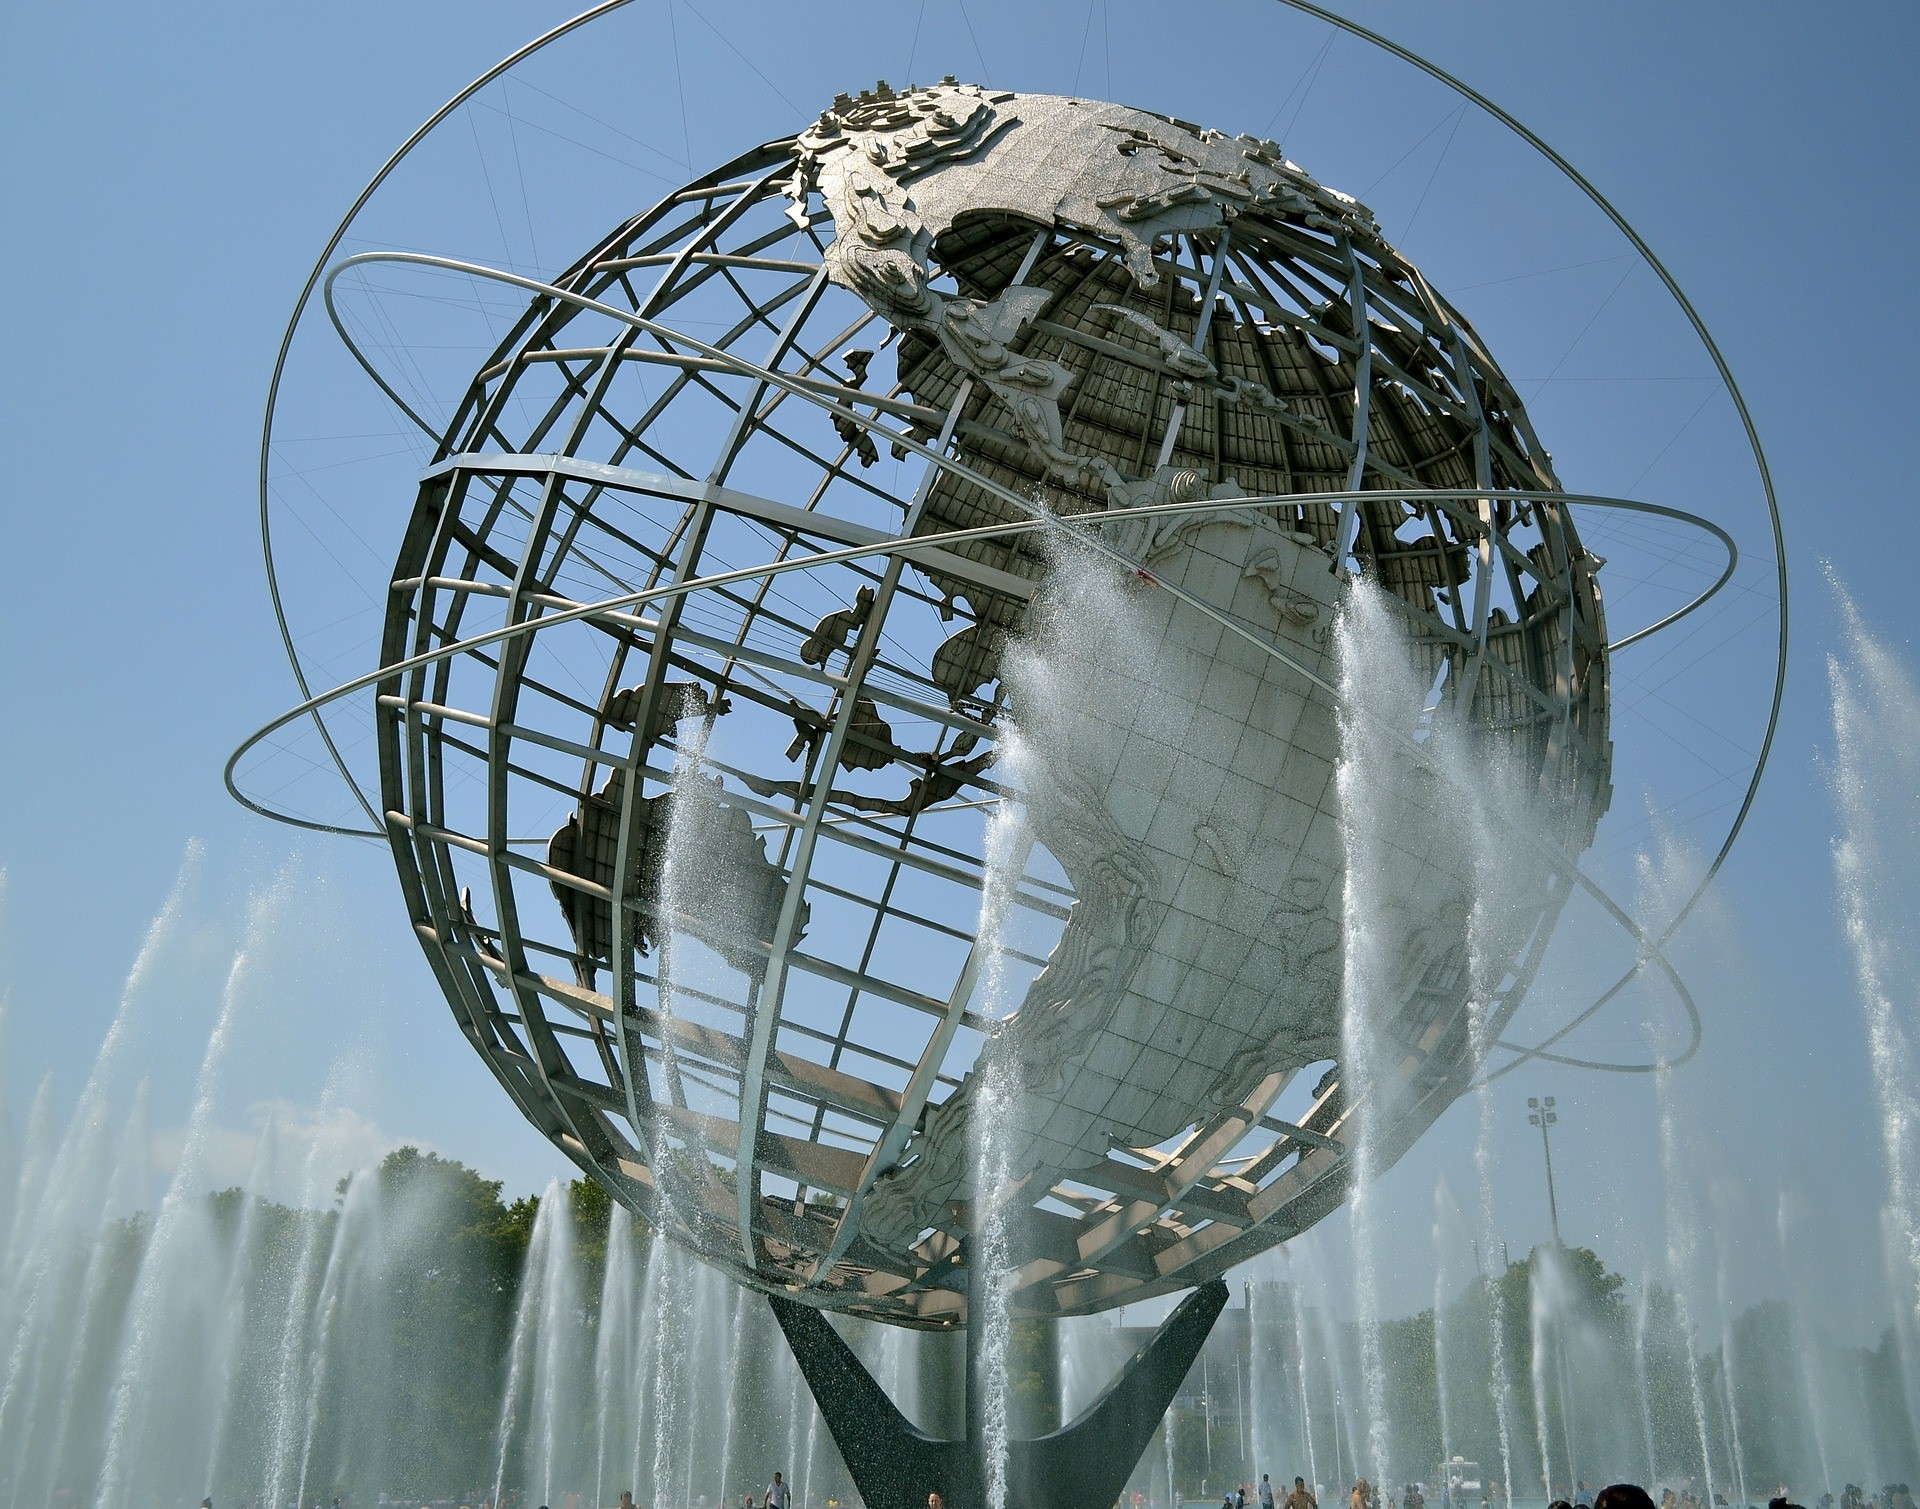 The Unisphere, a stainless-steel globe, which is the symbol of the 1964 World's Fair